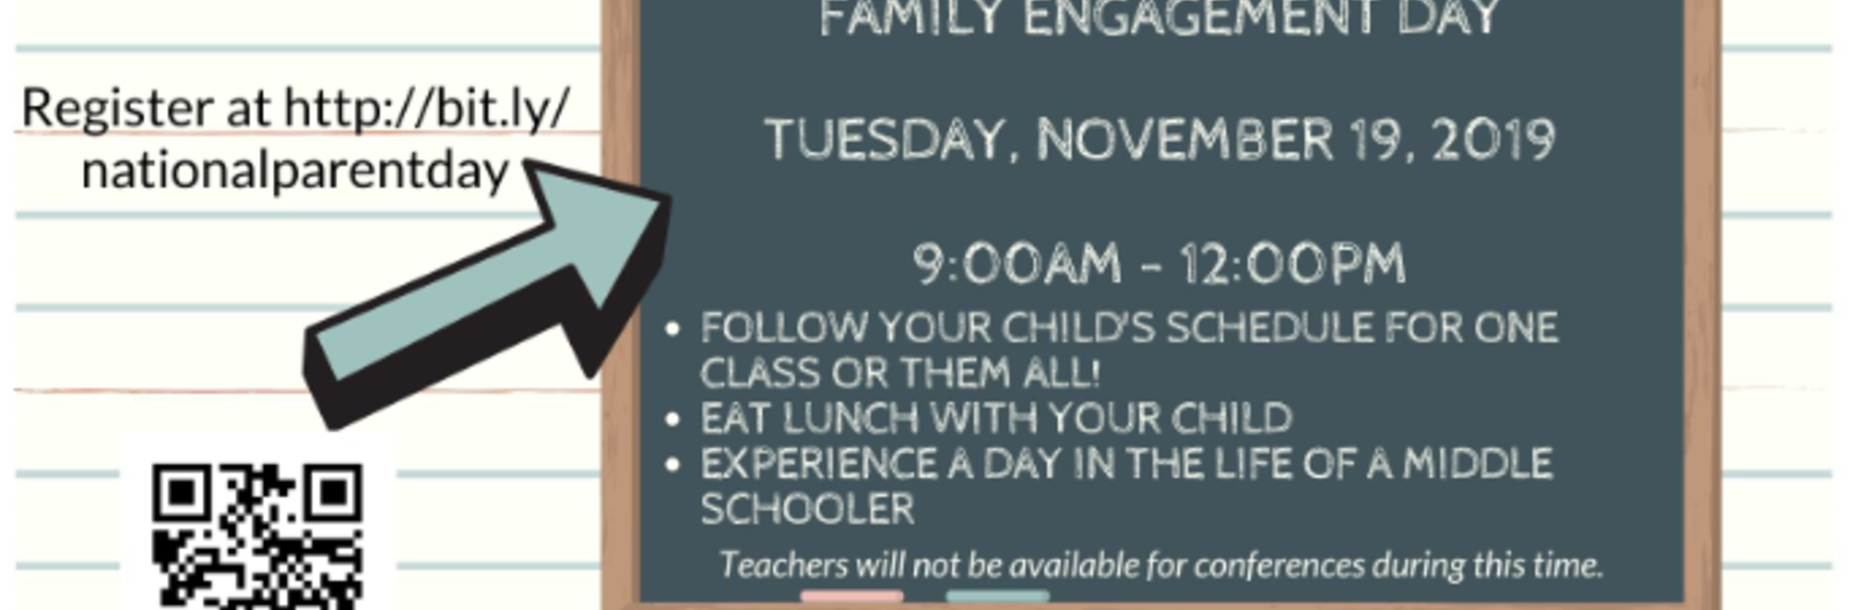 Family Engagement Day